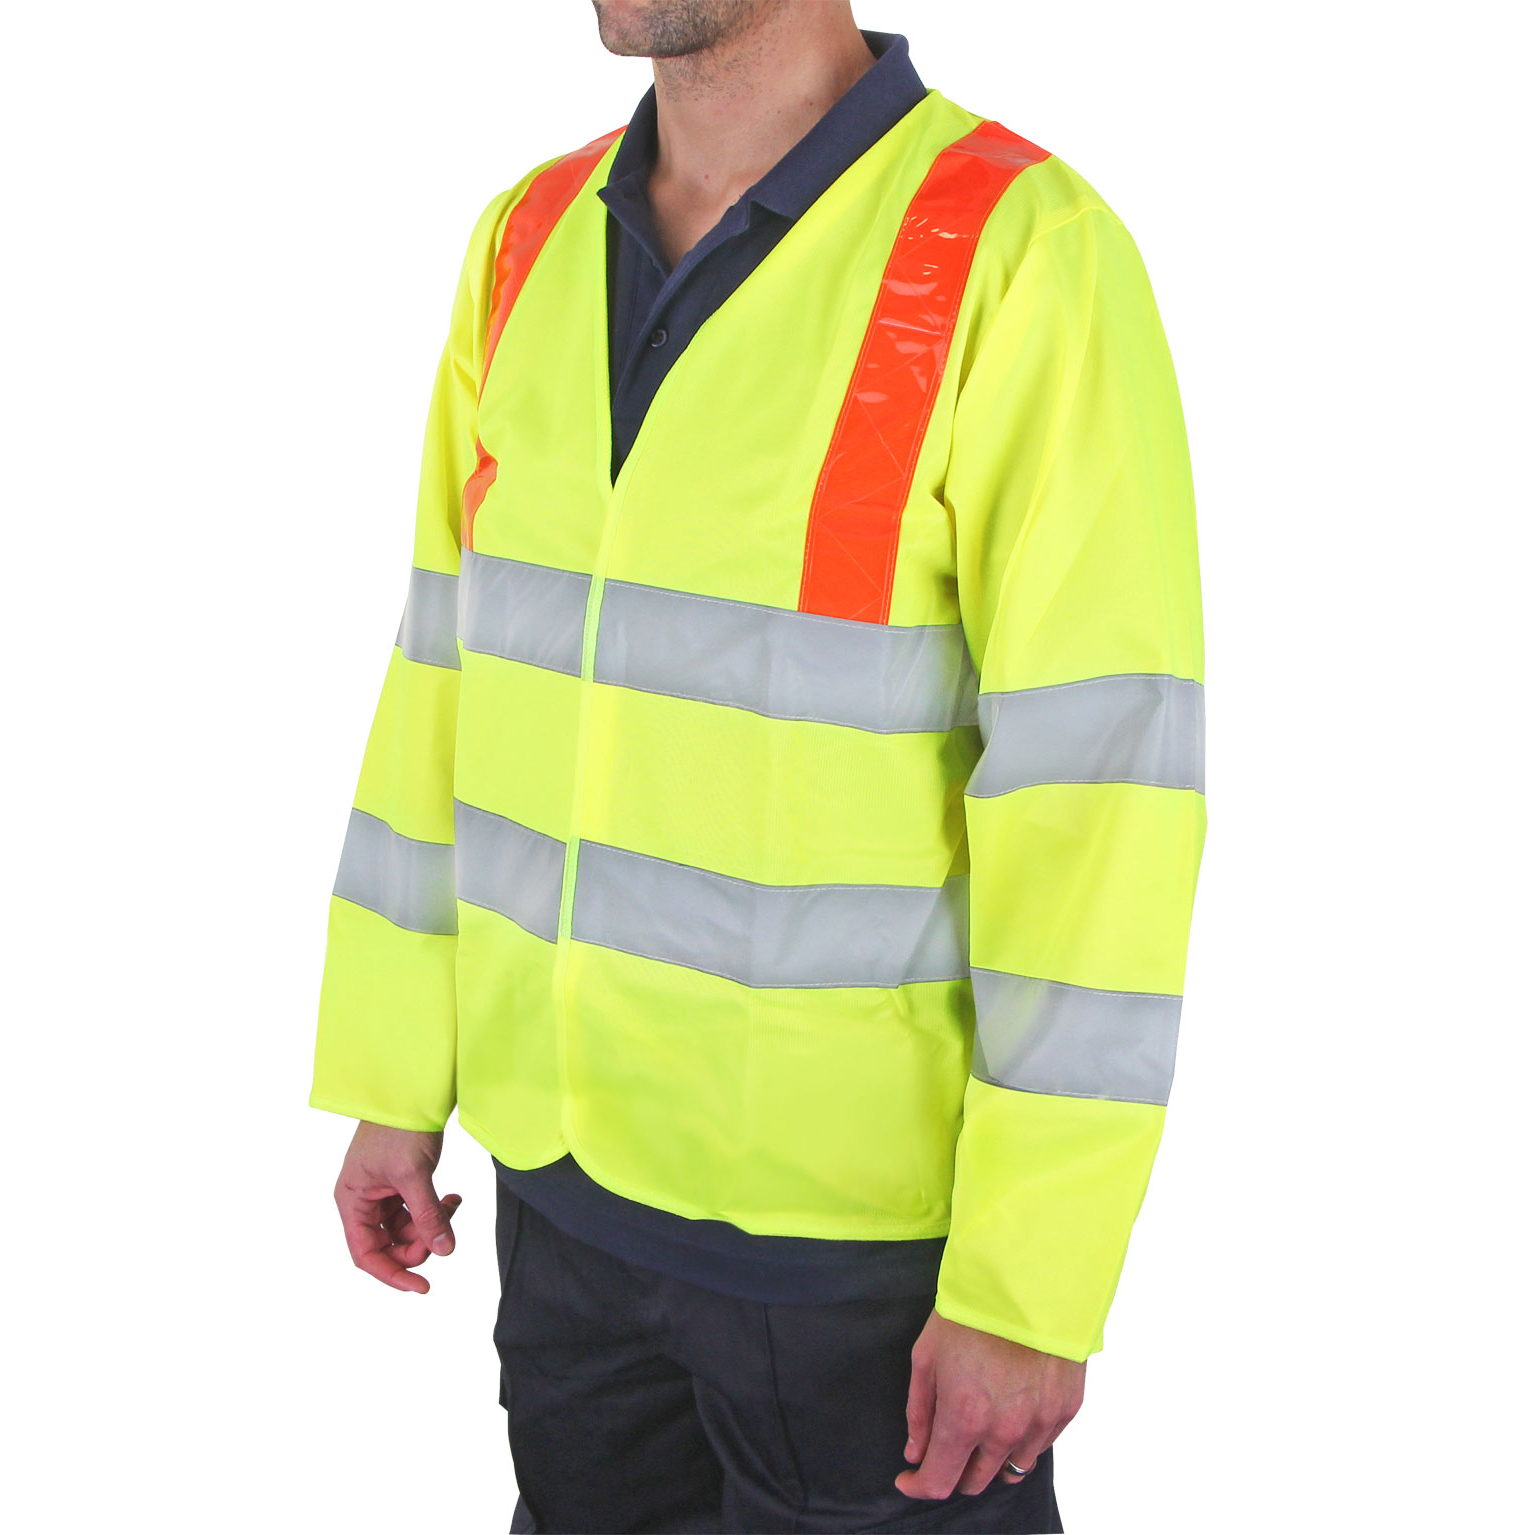 BSeen High Visibility Long Sleeved Jerkin Large Saturn Yellow/Red Ref PKJENG(RT)L *Up to 3 Day Leadtime*